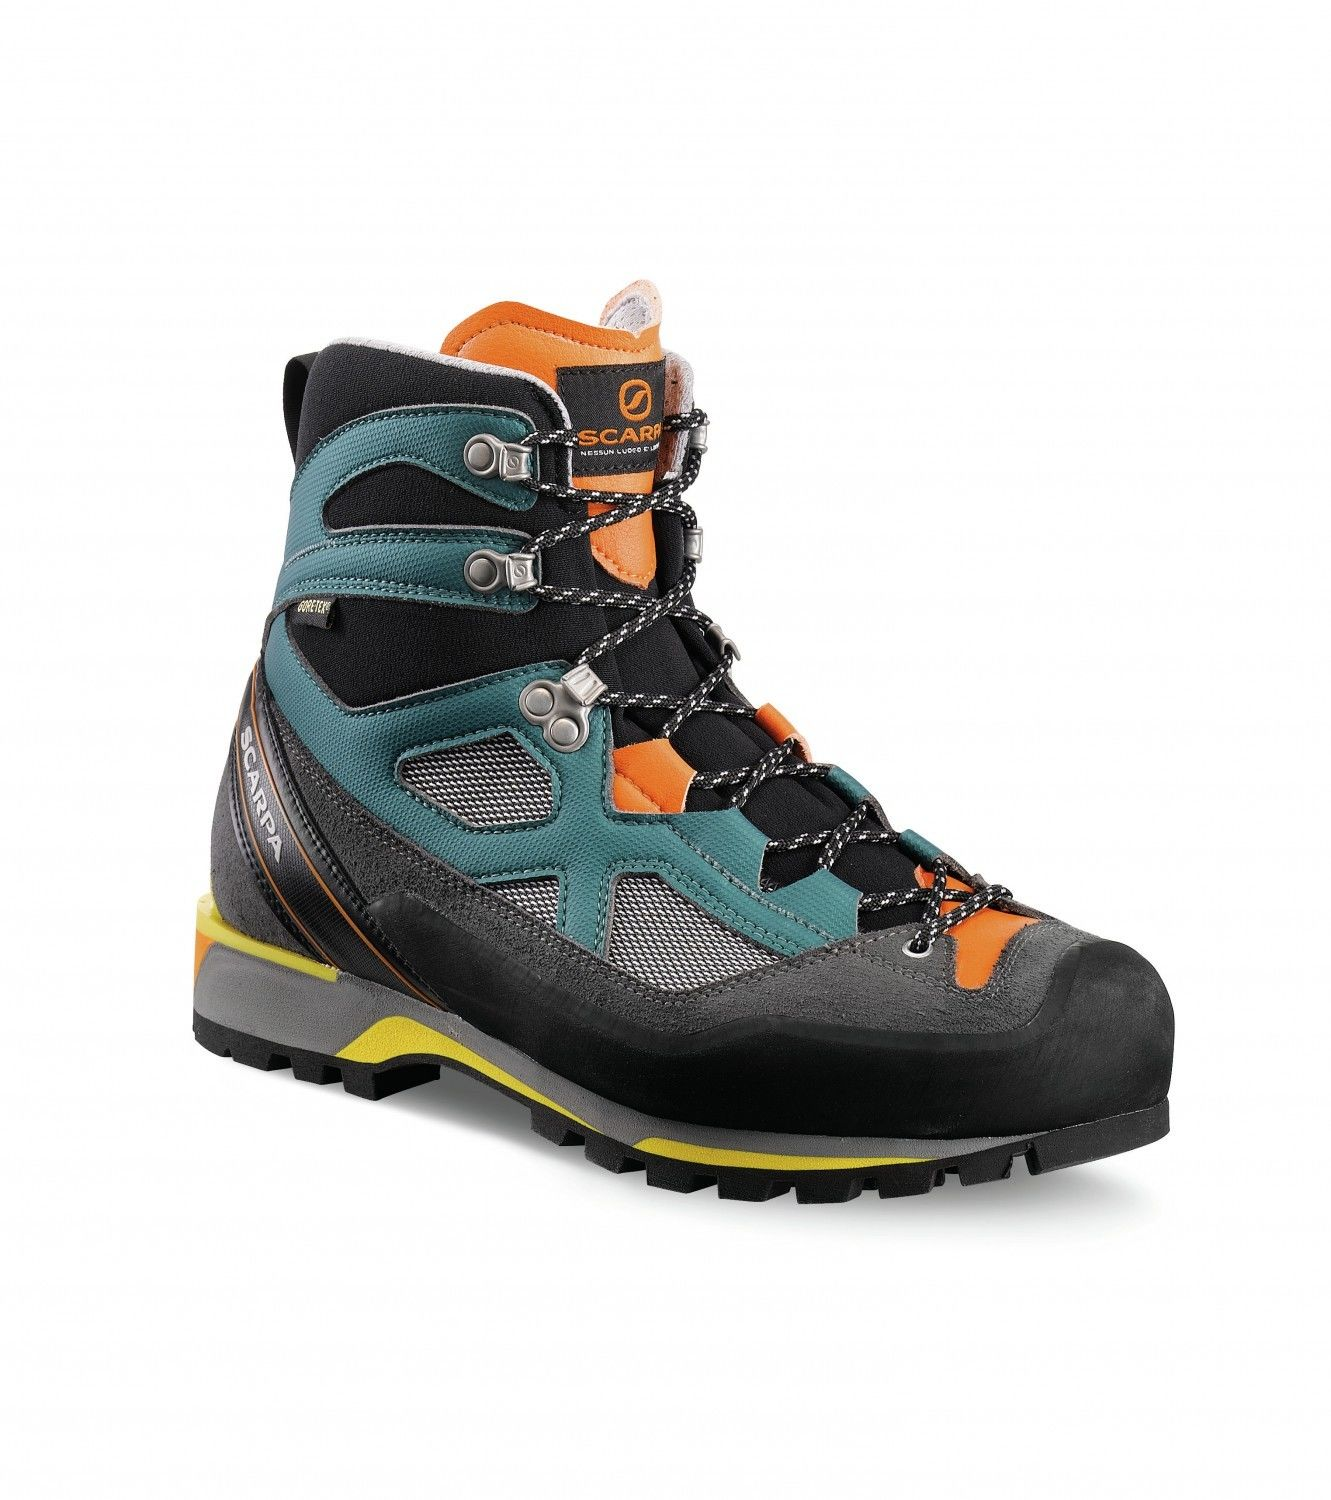 Scarpa M Rebel Lite Gtx® | Größe EU 37 / UK 4 / US M 5 / US W 6,EU 38 / UK 5